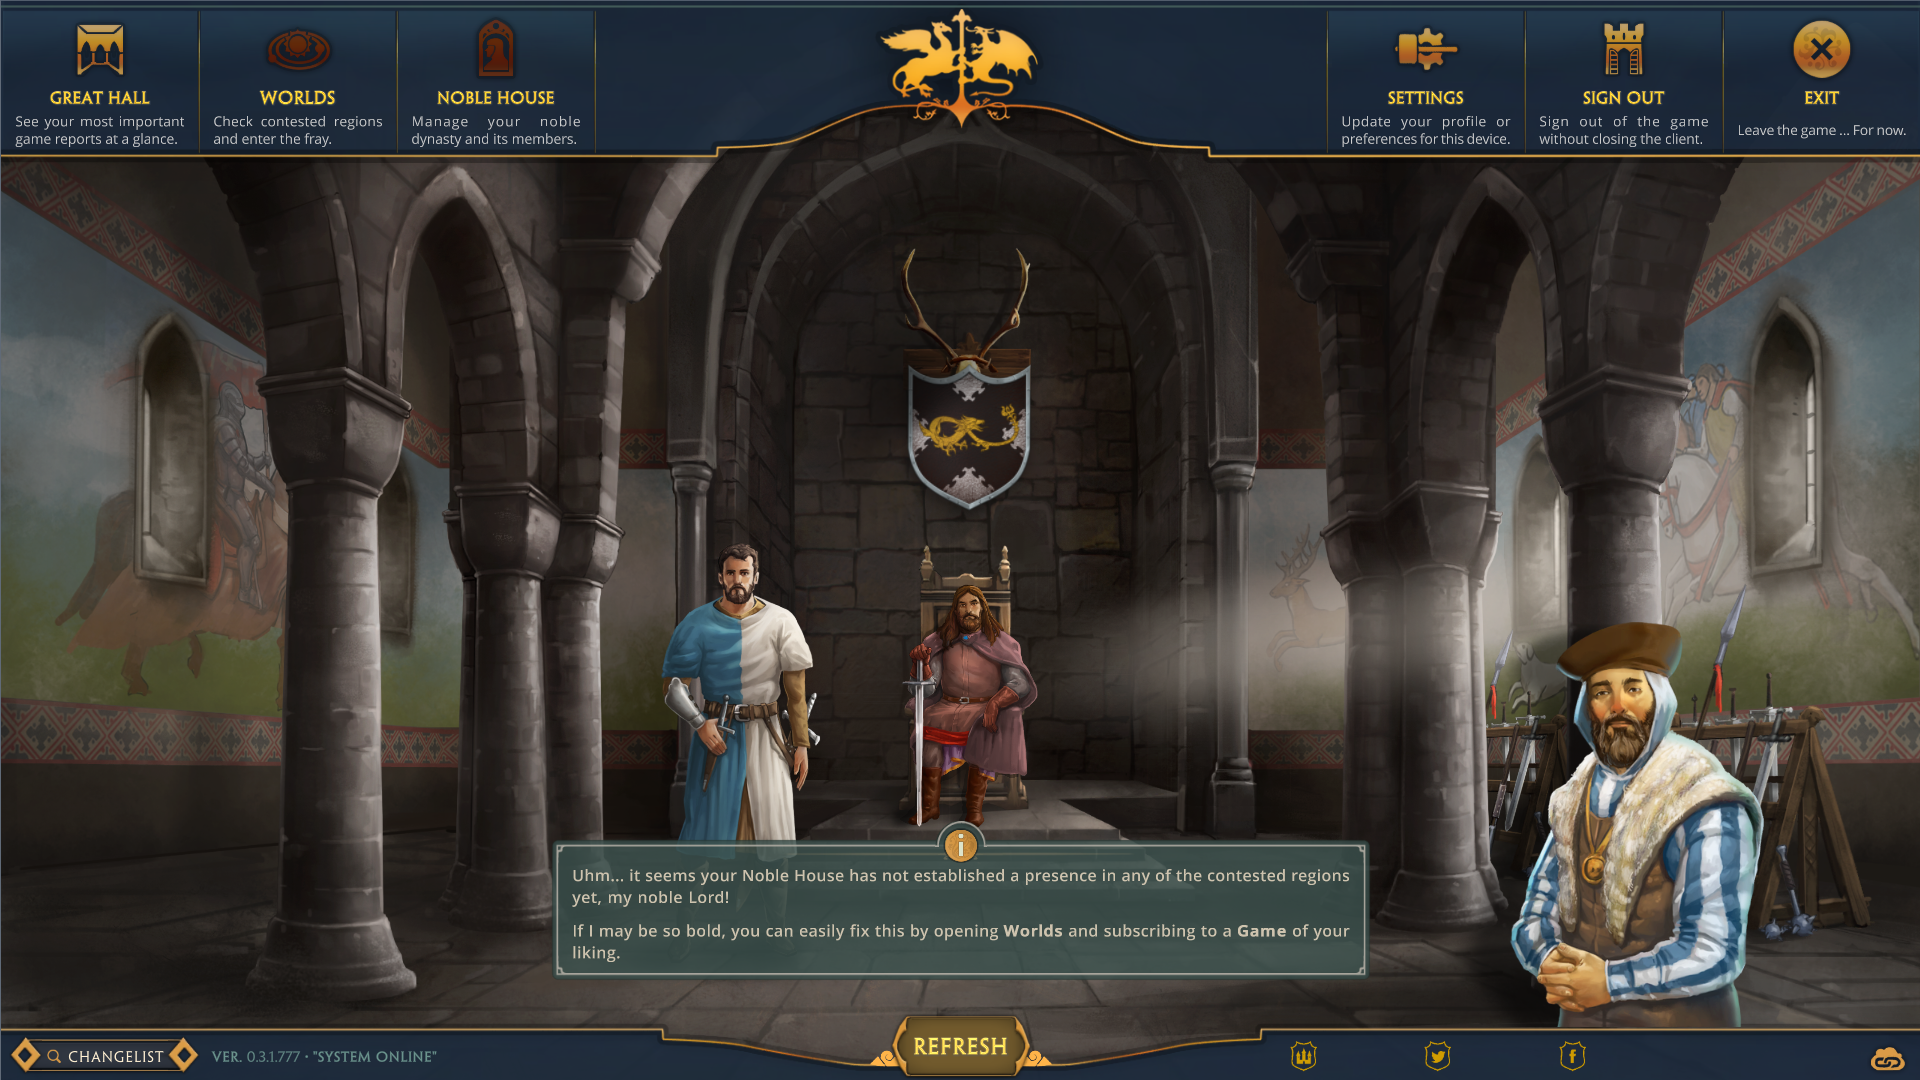 Knights Hall - the customizable diplomacy screen